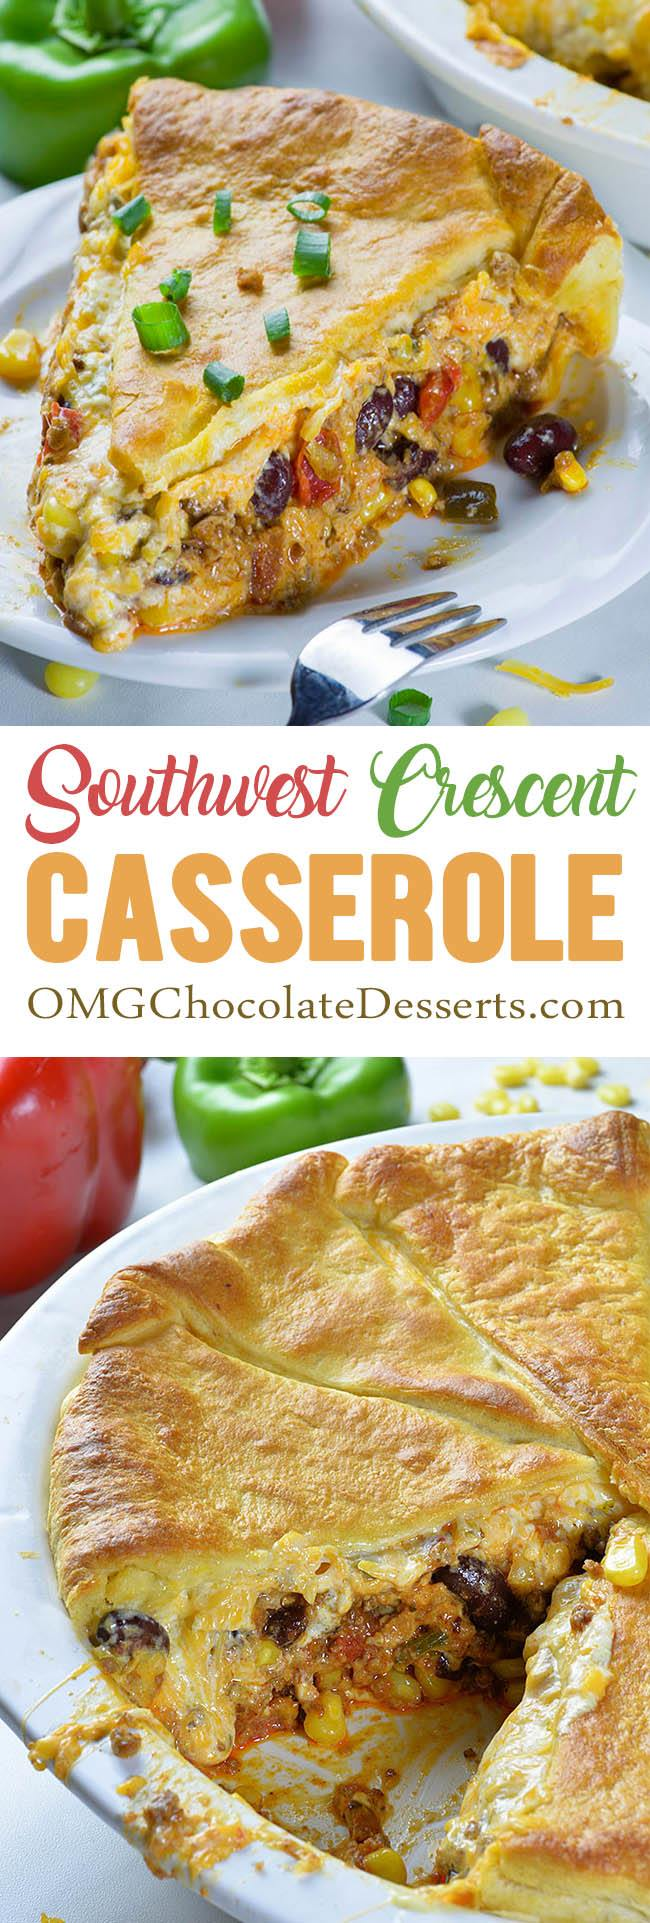 Southwest Crescent Casserole is simple and easy meal for whole family. It's great idea for weeknight dinner!!!